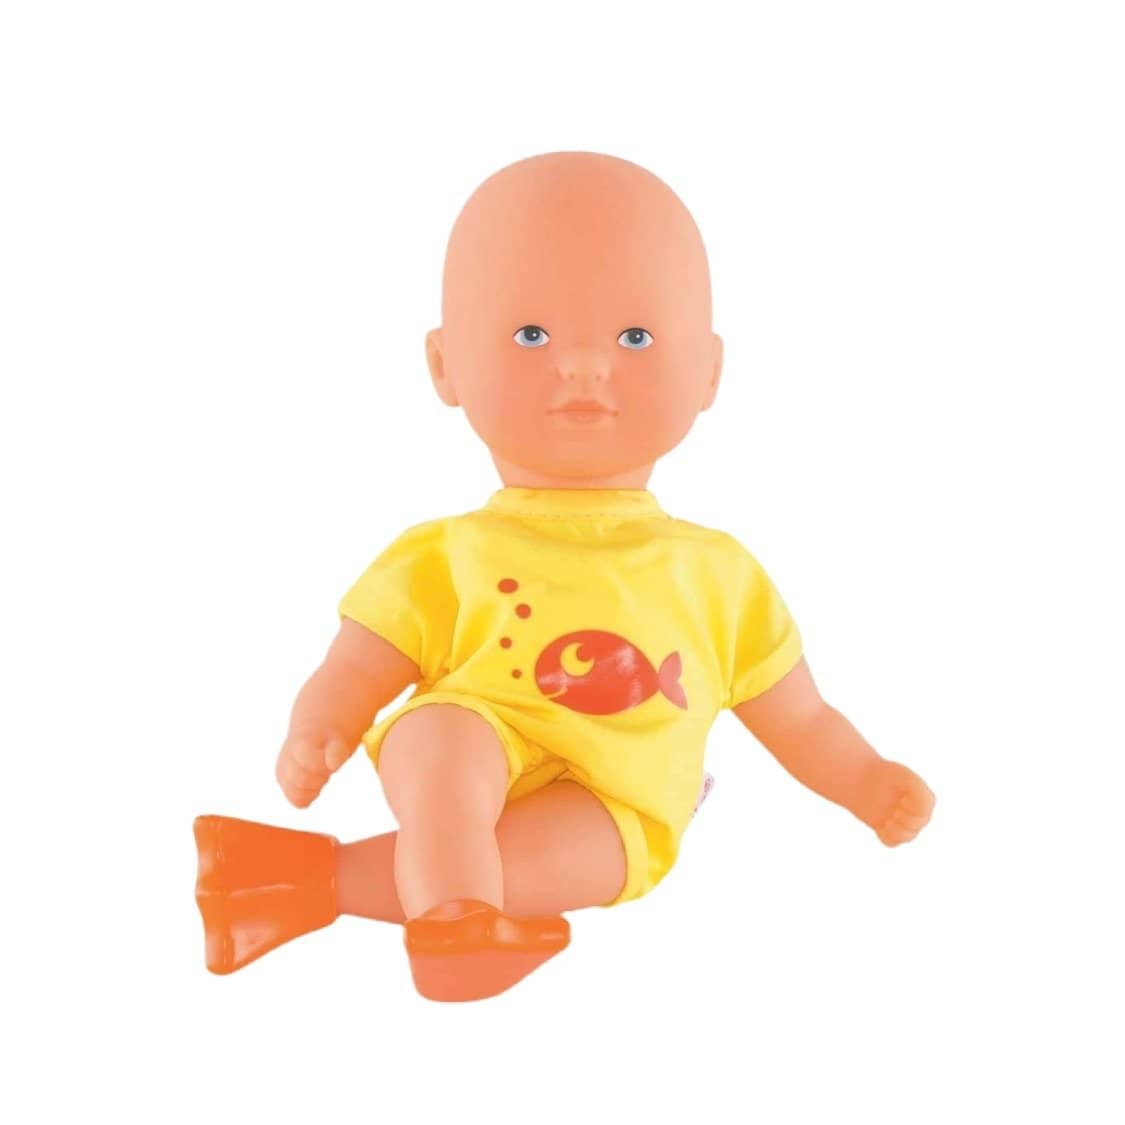 Mini Bath Yellow - Corolle Mon Premier Poupon Toy Baby Doll-Kidding Around NYC